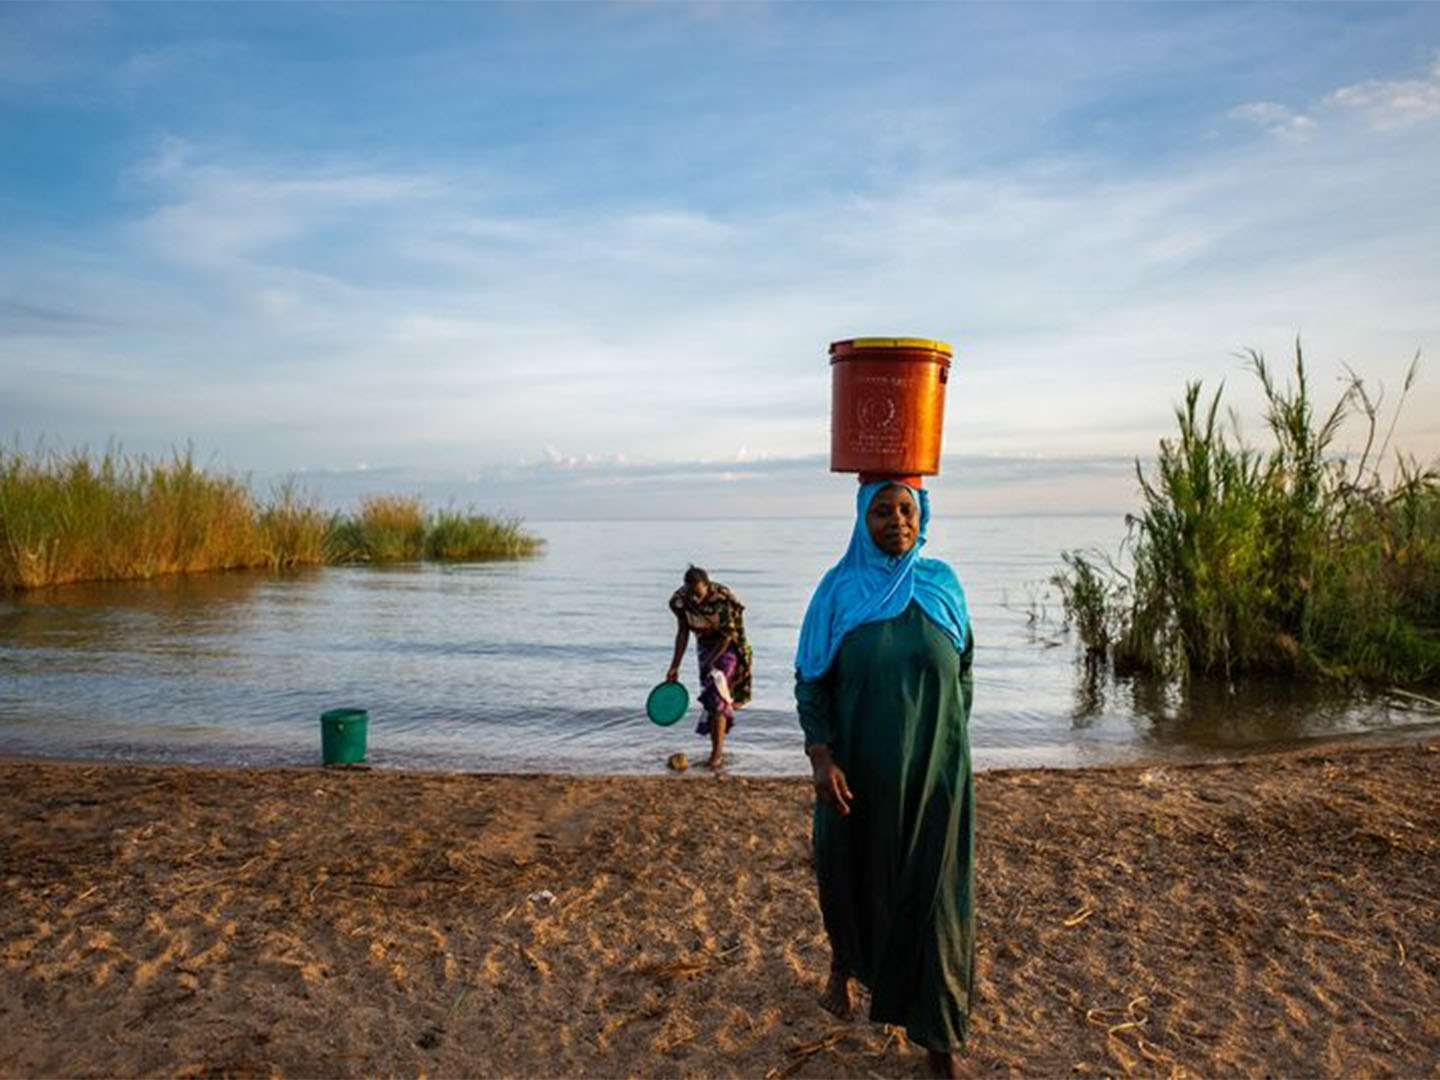 African woman carrying a bucket of water on her head. Photo courtesy of Roshni Lodhia/The Nature Conservancy.